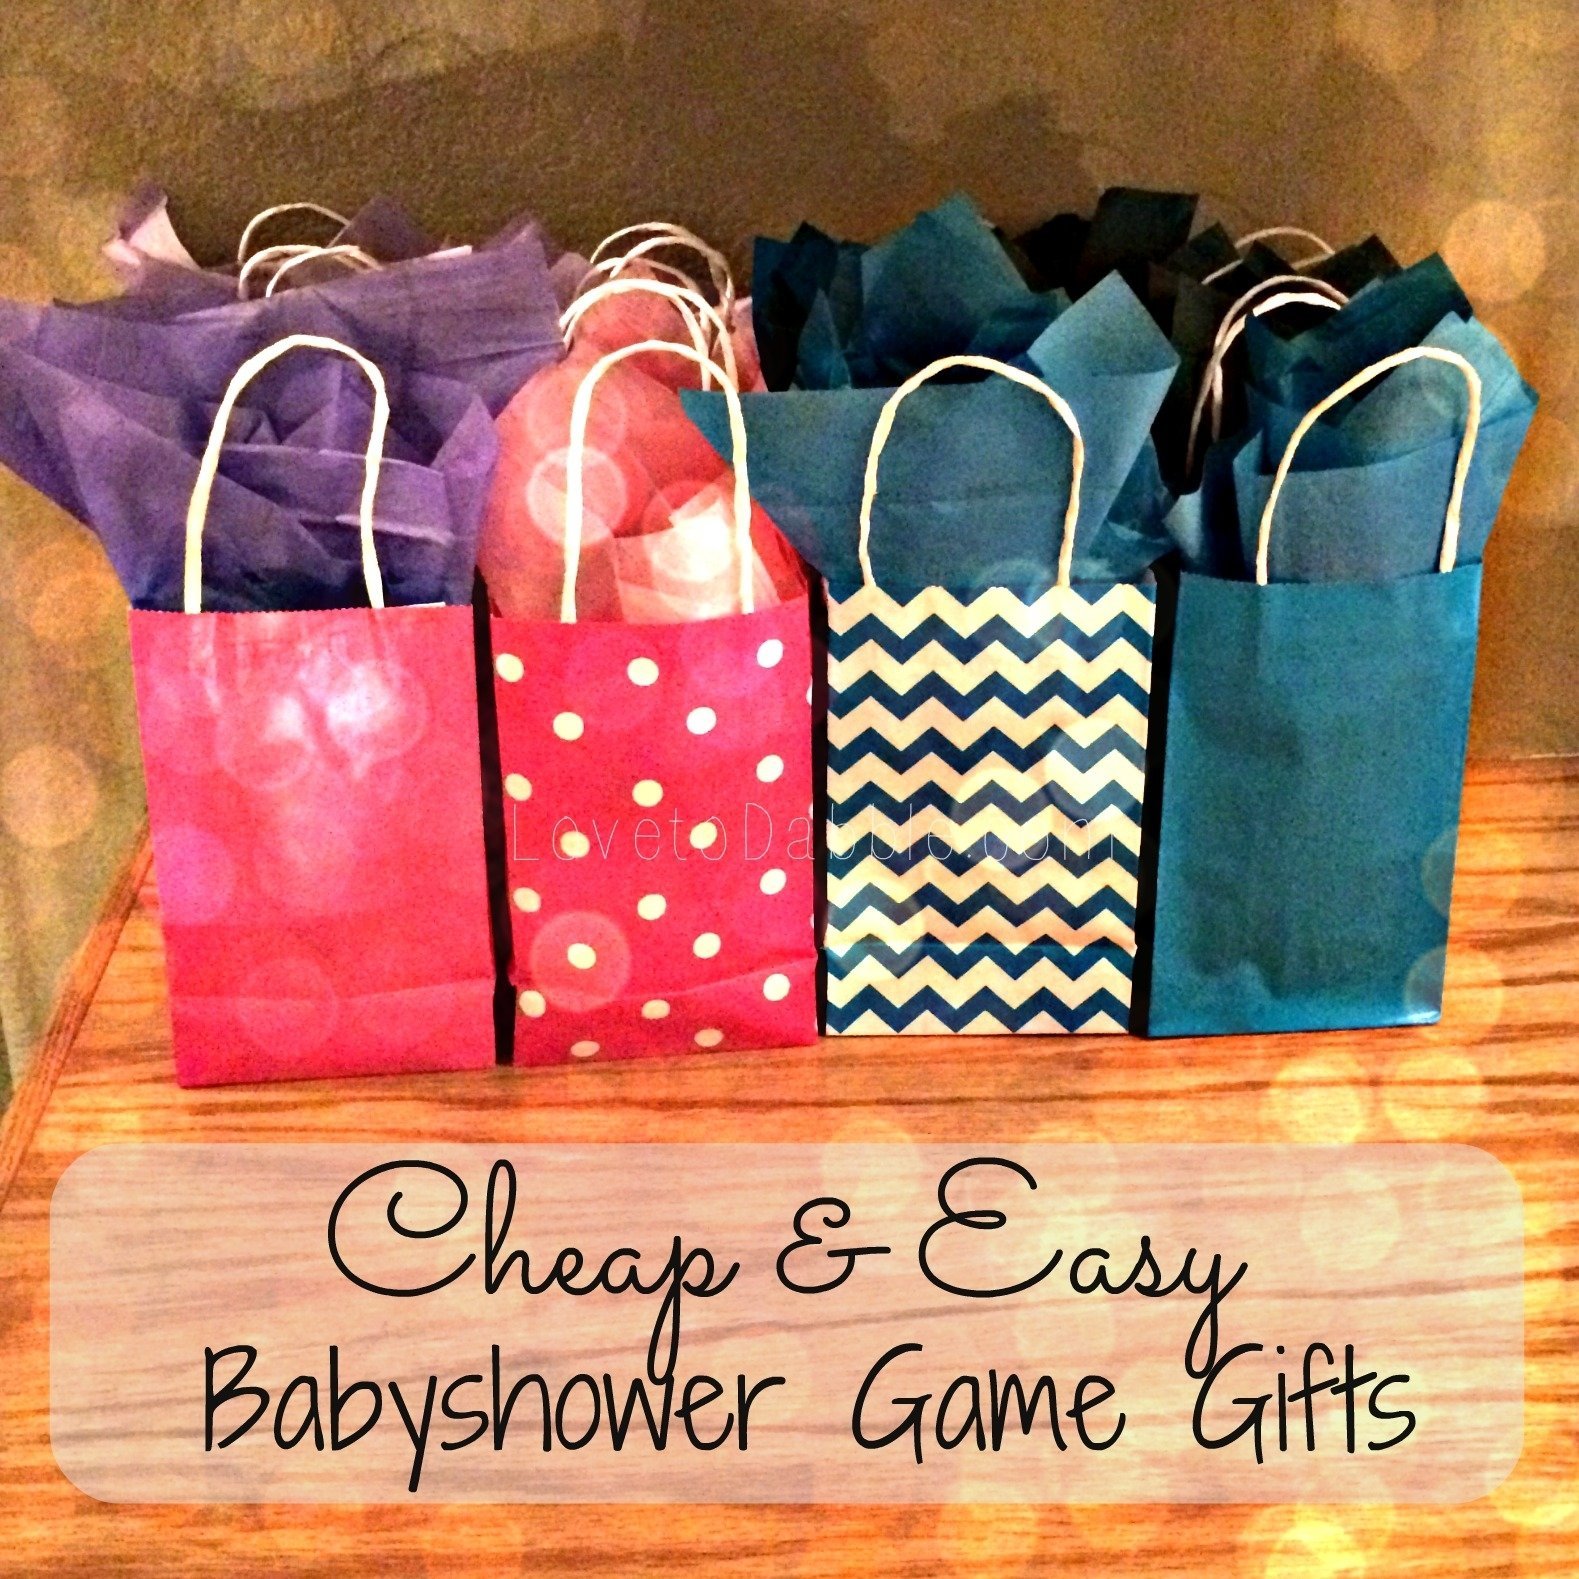 10 Fabulous Baby Shower Game Prizes Ideas baby shower game gifts gift ideas for games prizes cute nail set 2020